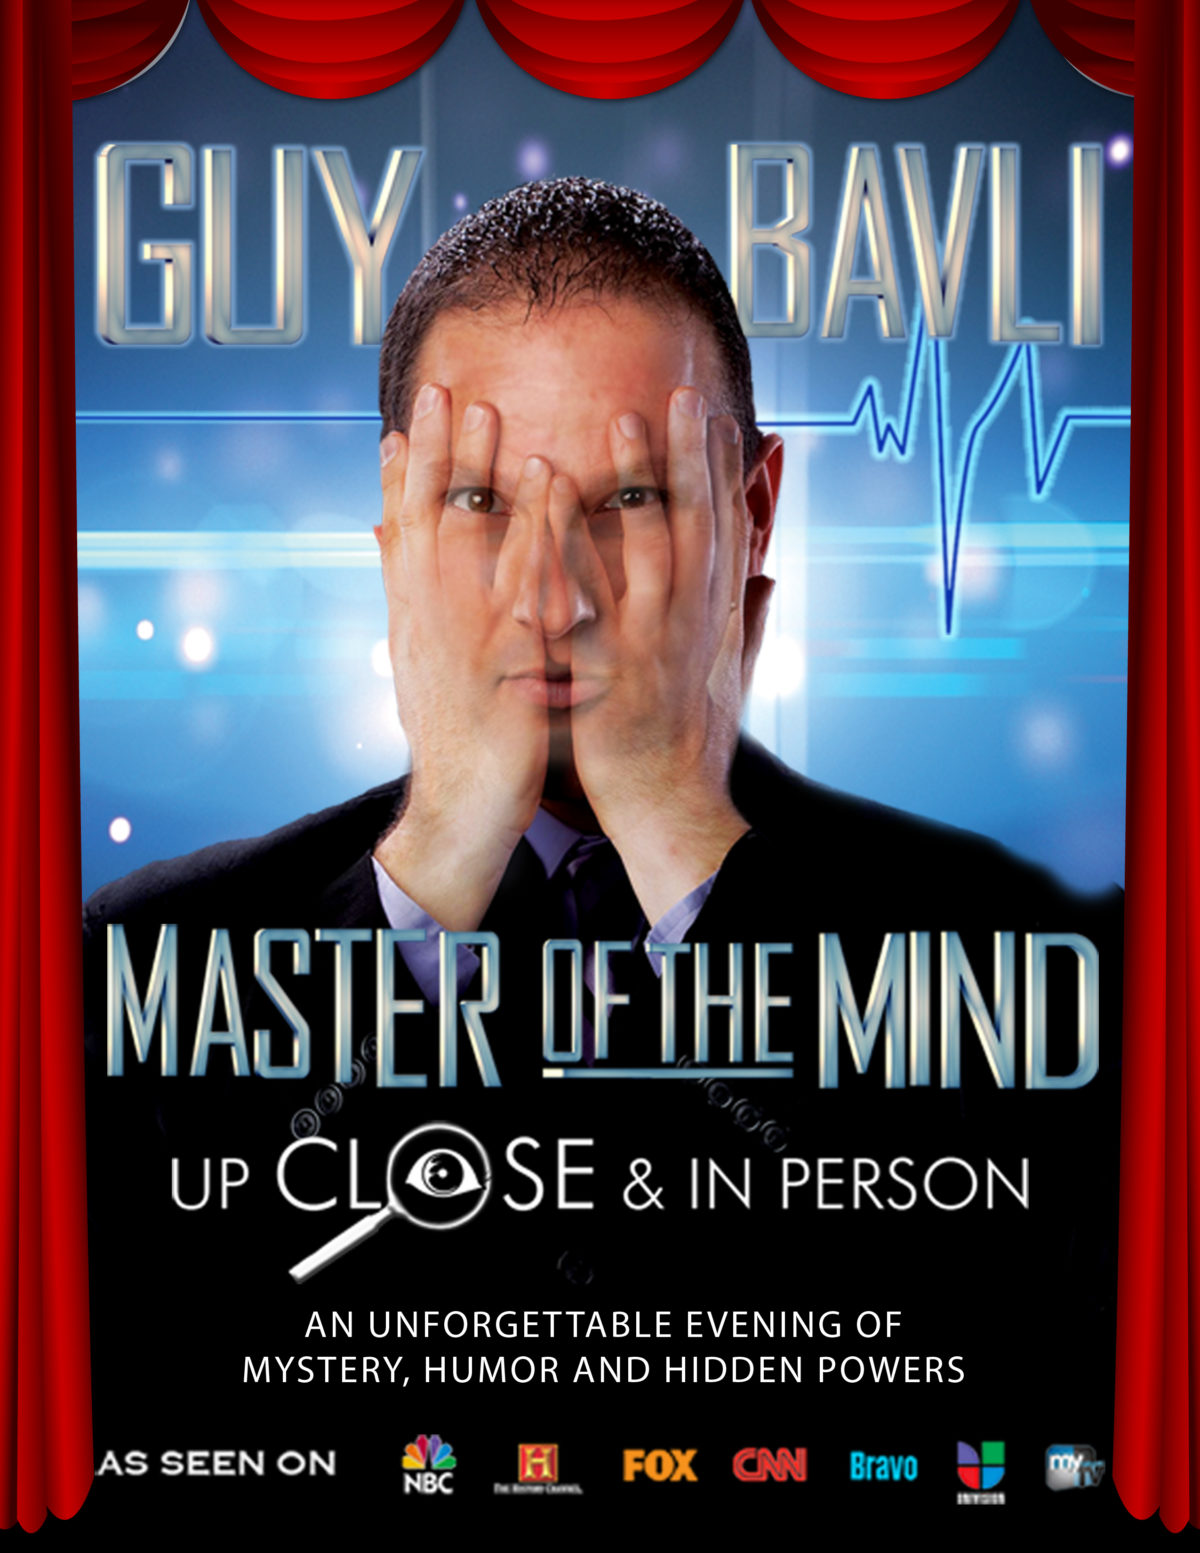 1482948946guy_bavli_up_close_and_person_poster